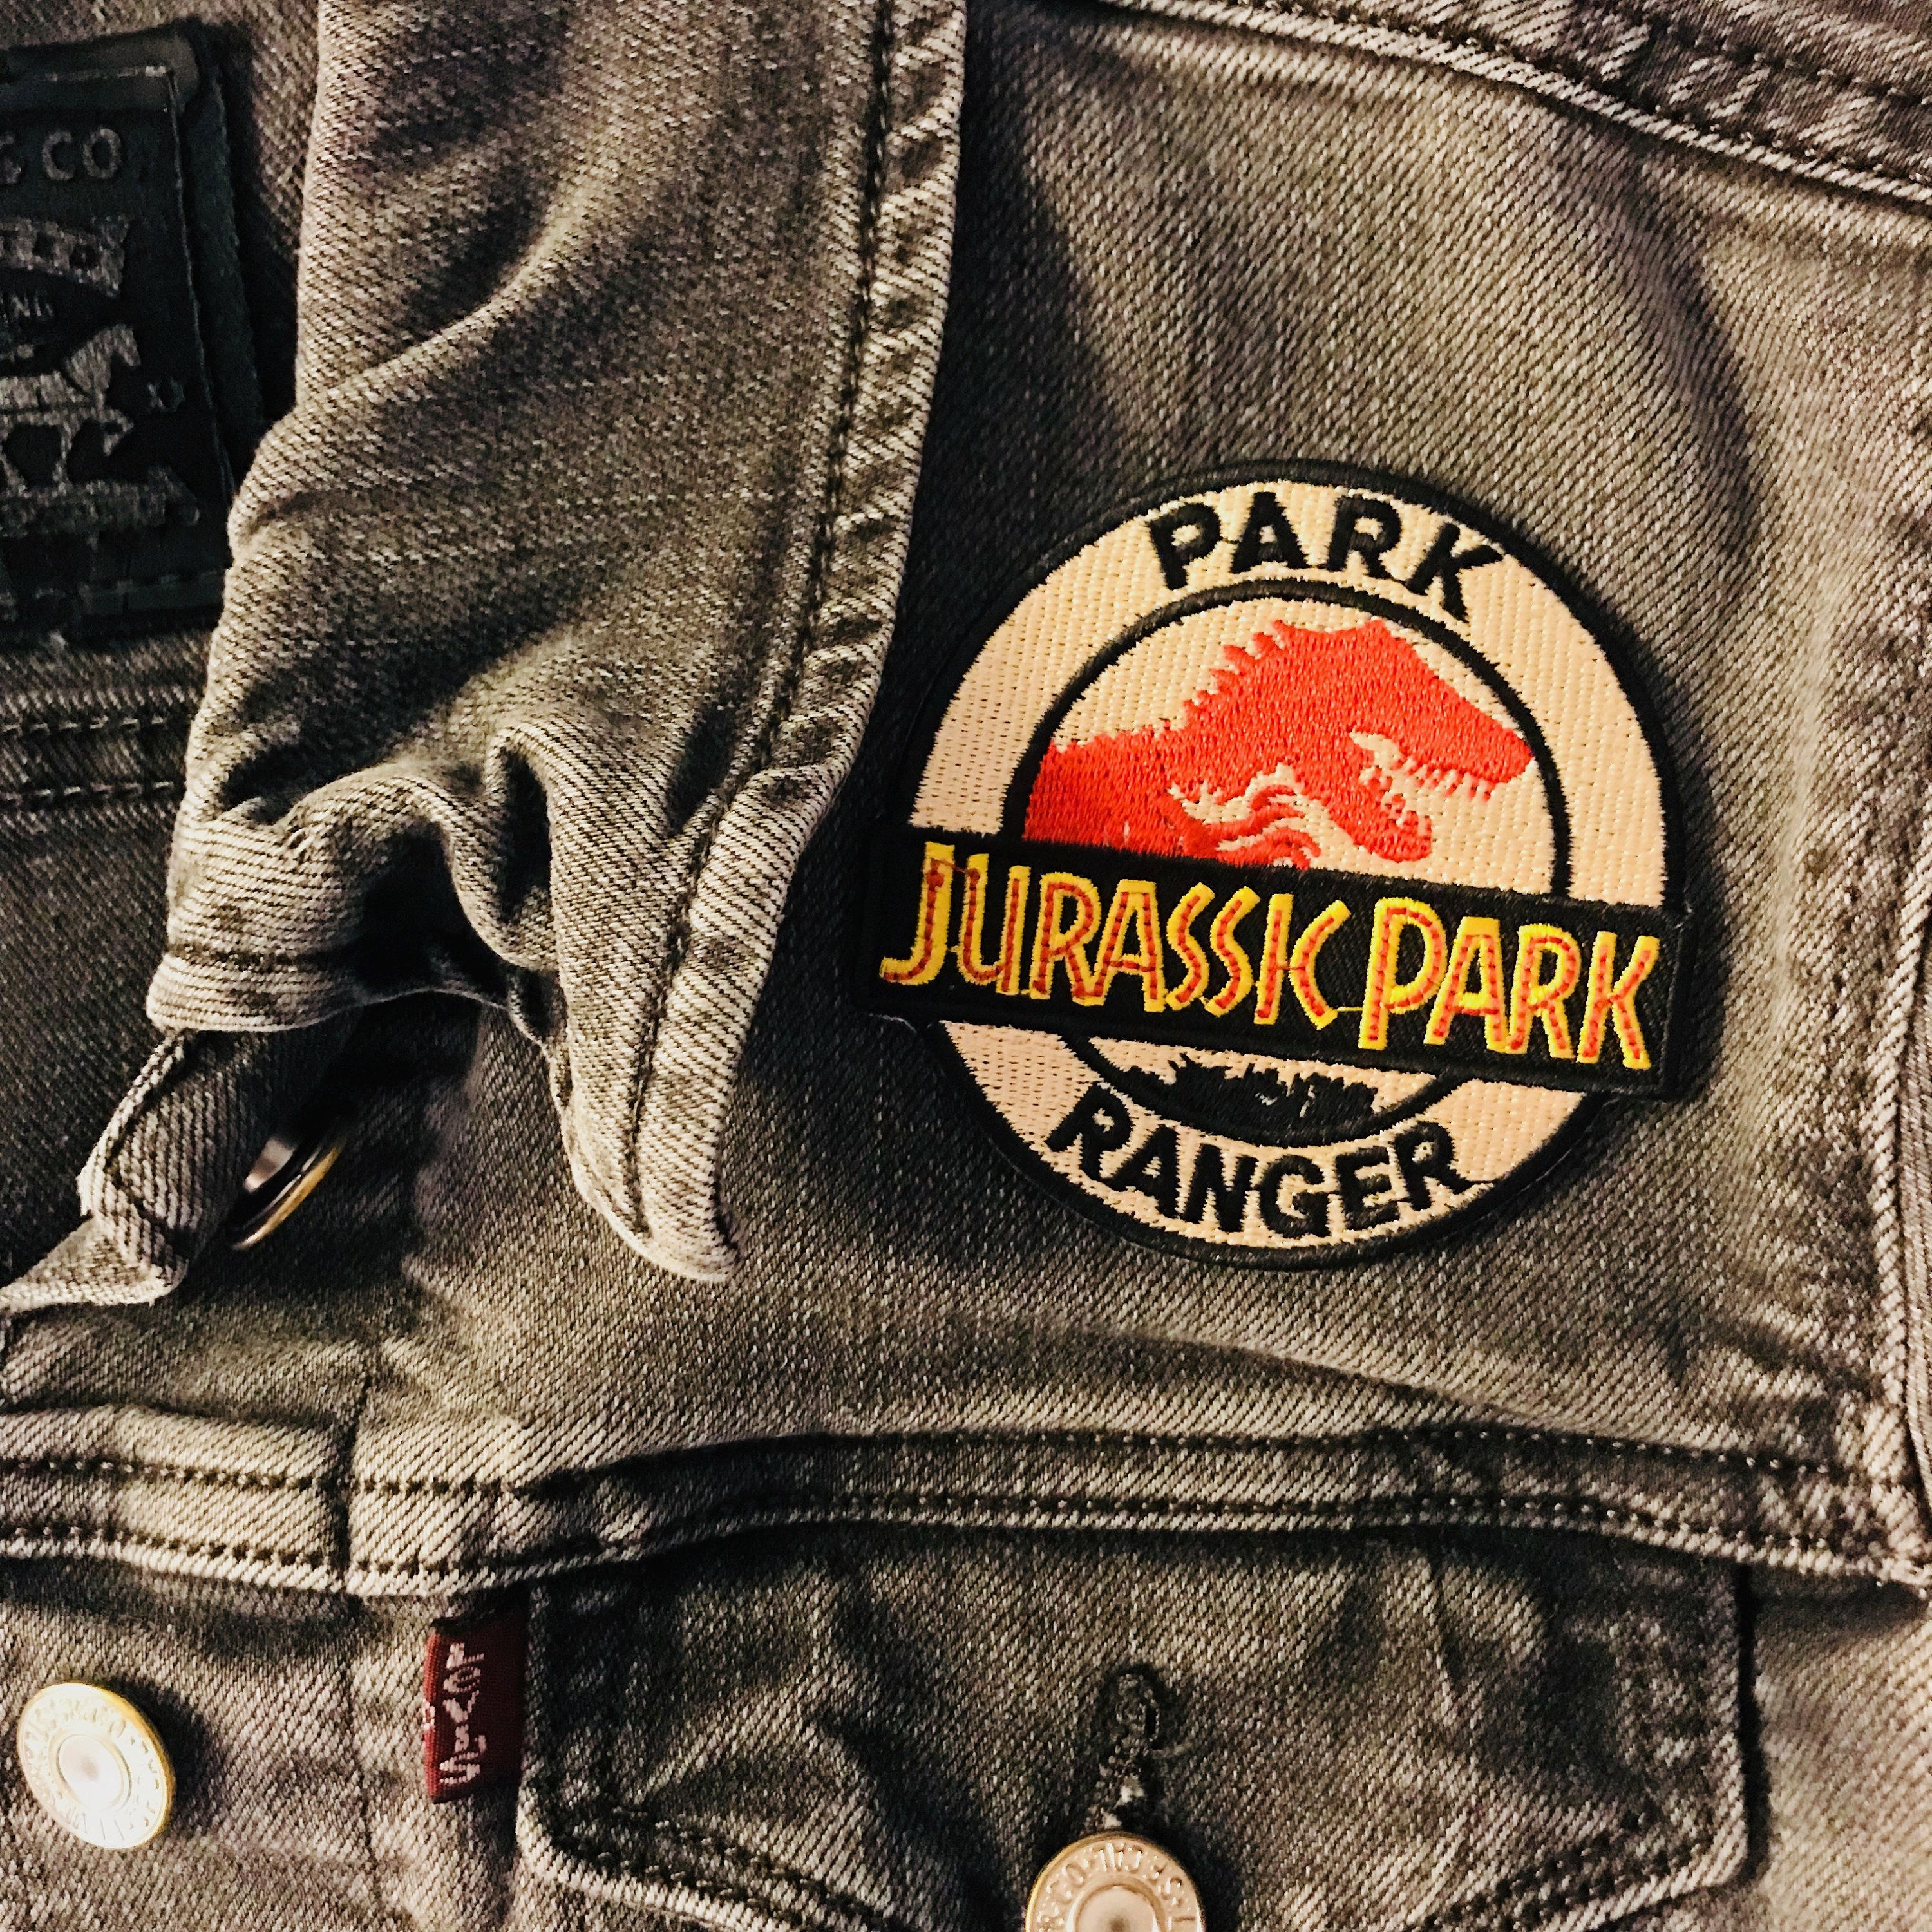 Park Ranger Patch Accessory Embroidery Jurassic Park Jurassic World